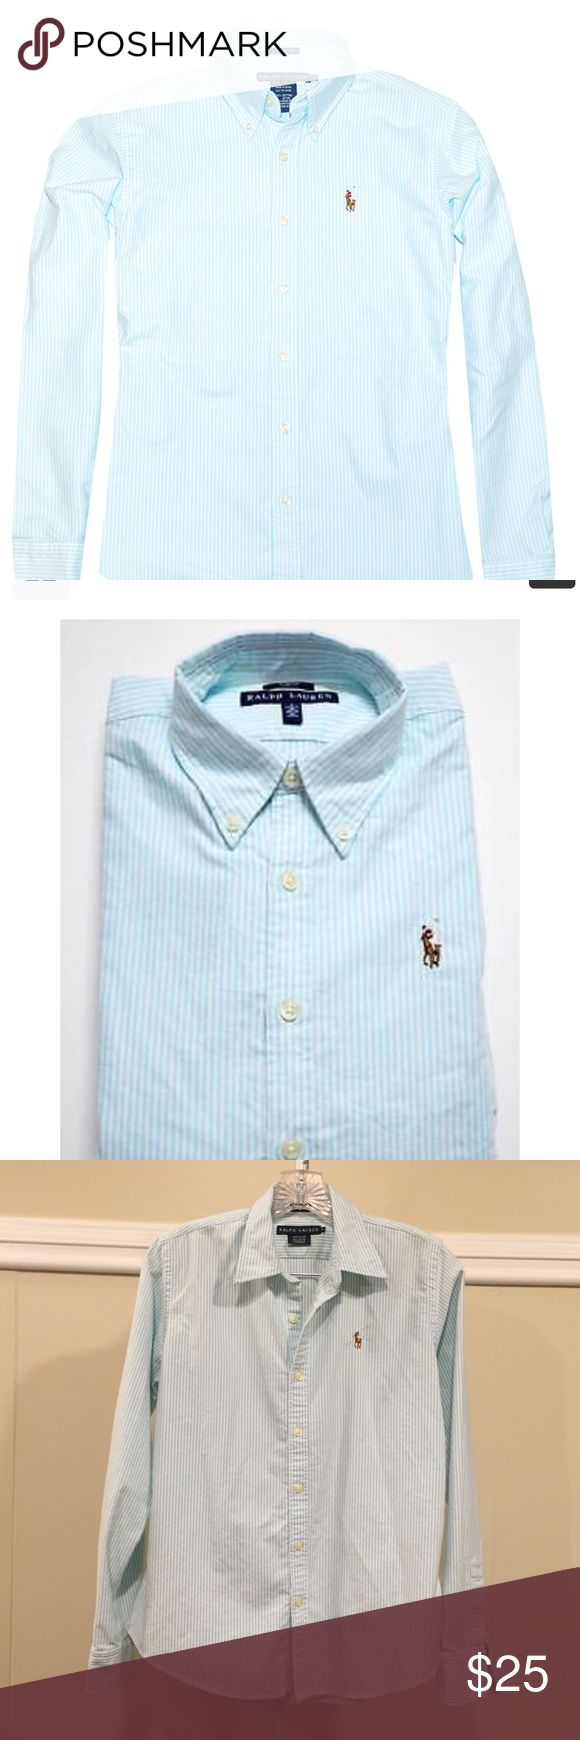 """RALPH LAUREN Slim Fit Button-Down LIKE NEW Authentic RL. """"Slim Fit""""/cut. The stripes are white and a light turquoise/Tiffany Blue color, but the lighting wasn't right when I photographed my own piece; stock photo reflects actual colors more accurately.  LIKE NEW condition; I don't think it's ever been worn; it's just been stored away for awhile! Ralph Lauren Tops Button Down Shirts"""